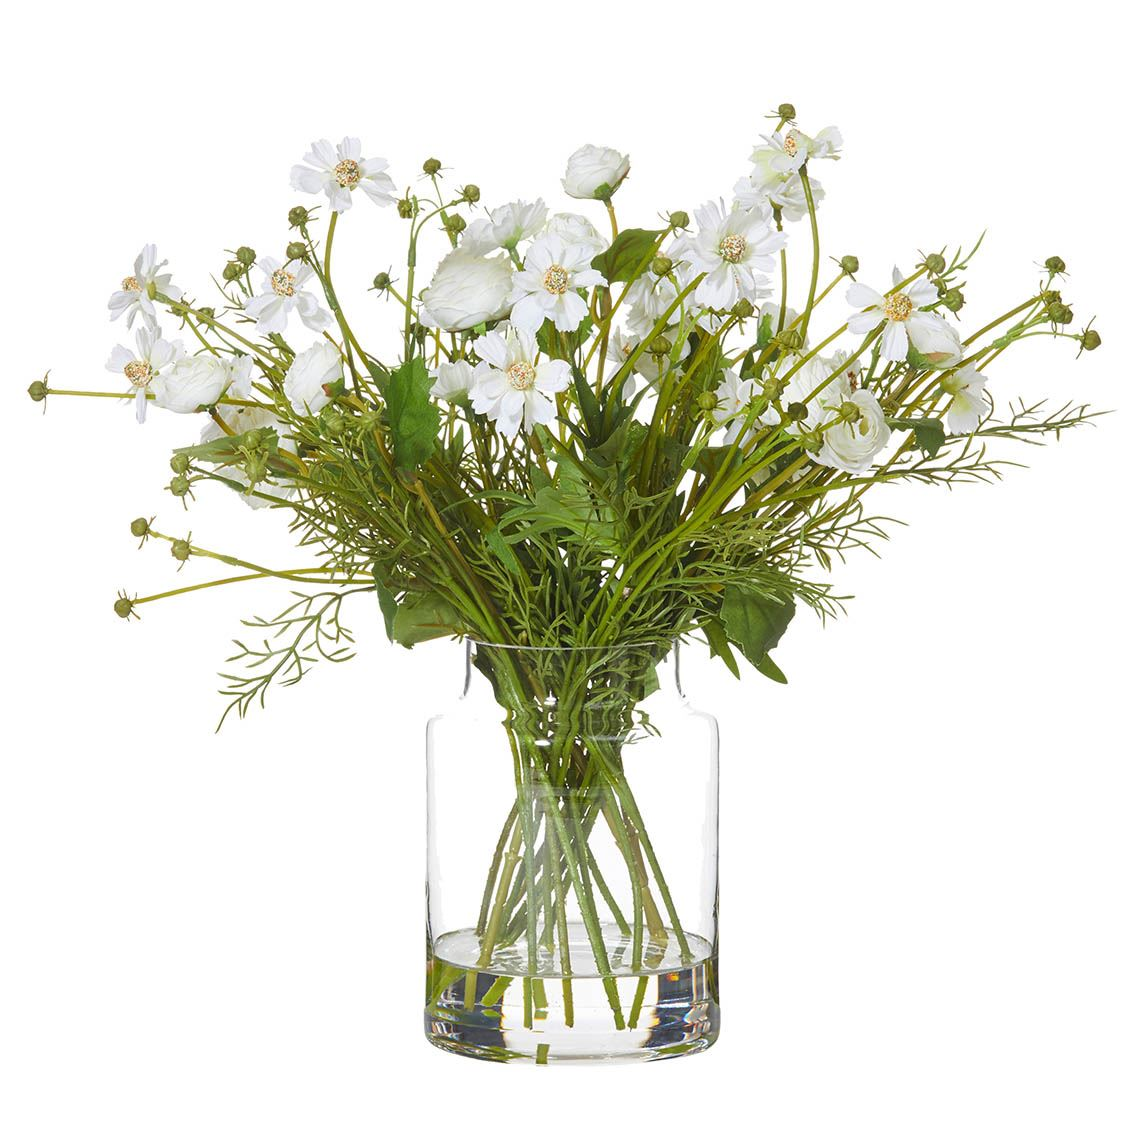 Daisy Mix In Vase Size W 52cm x D 52cm x H 42cm in White Plastic/Wire Freedom by Freedom, a Plants for sale on Style Sourcebook